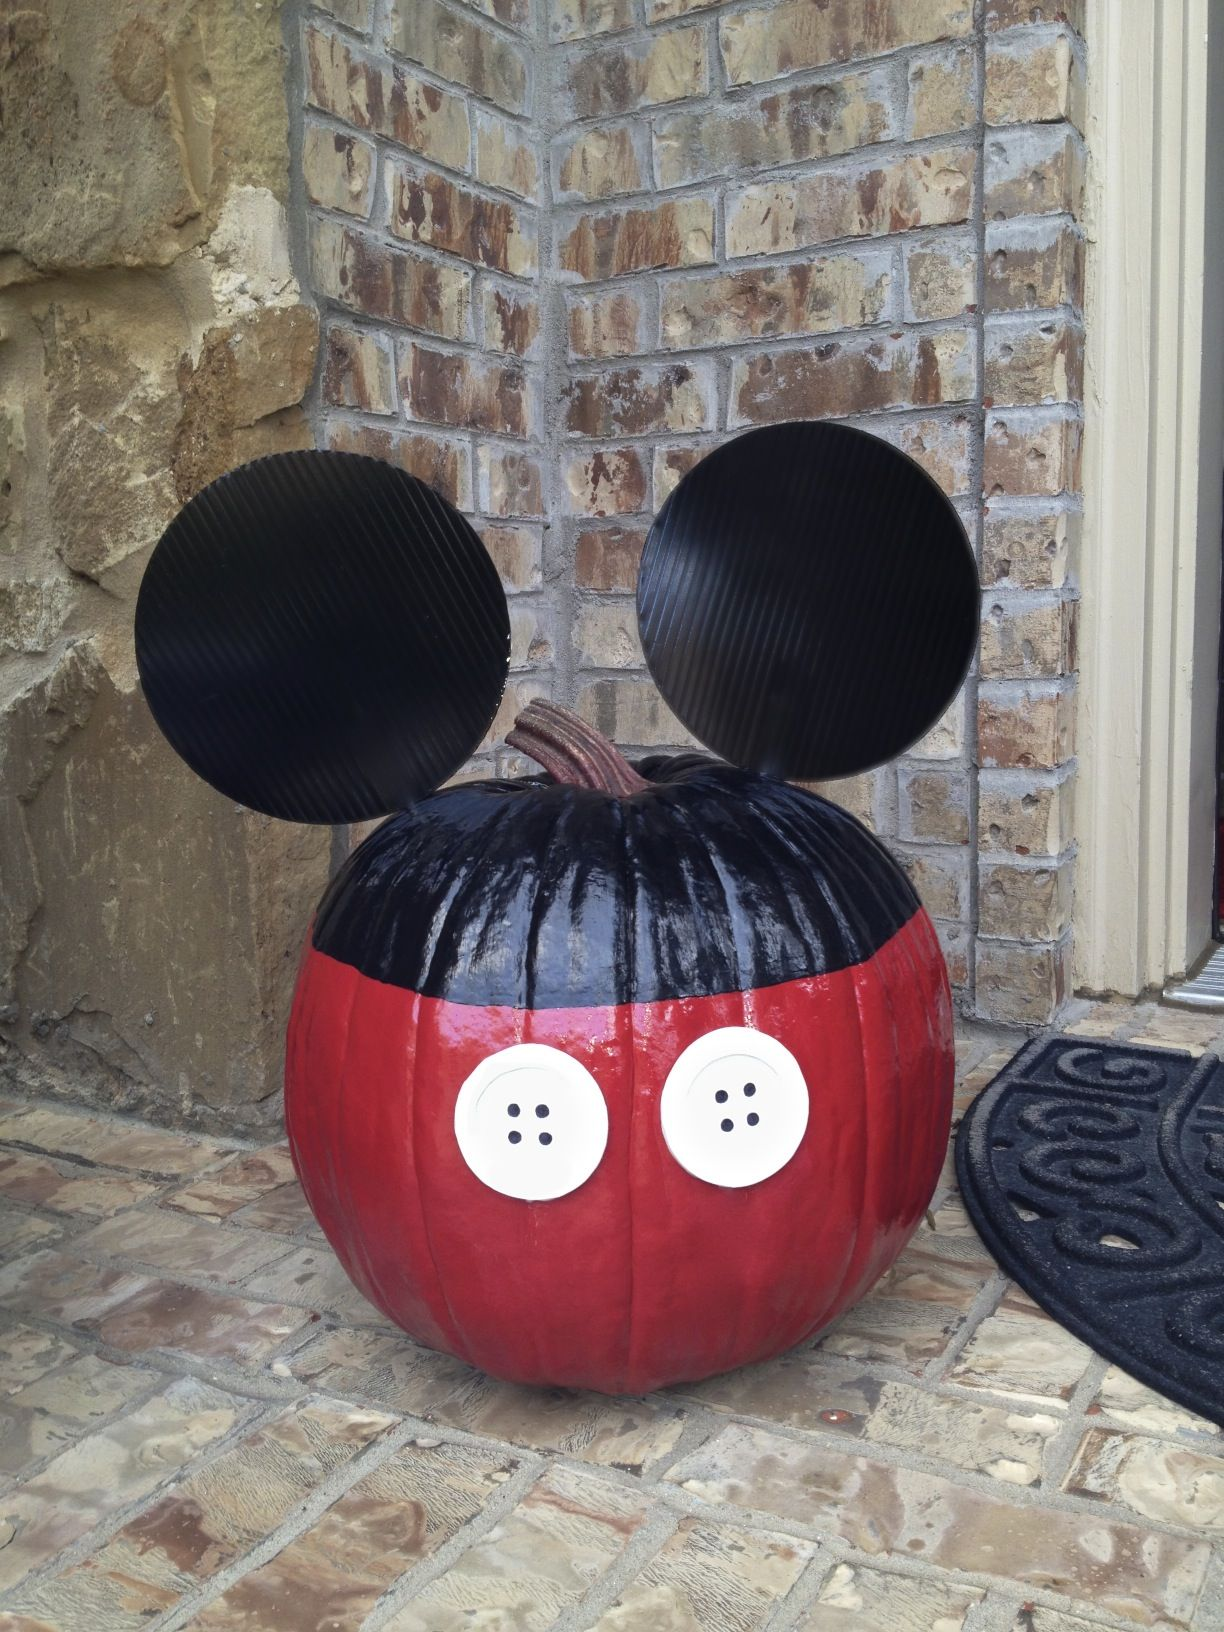 40 awesome pumpkin carving ideas for halloween decorating - Halloween Pumpkin Designs Without Carving